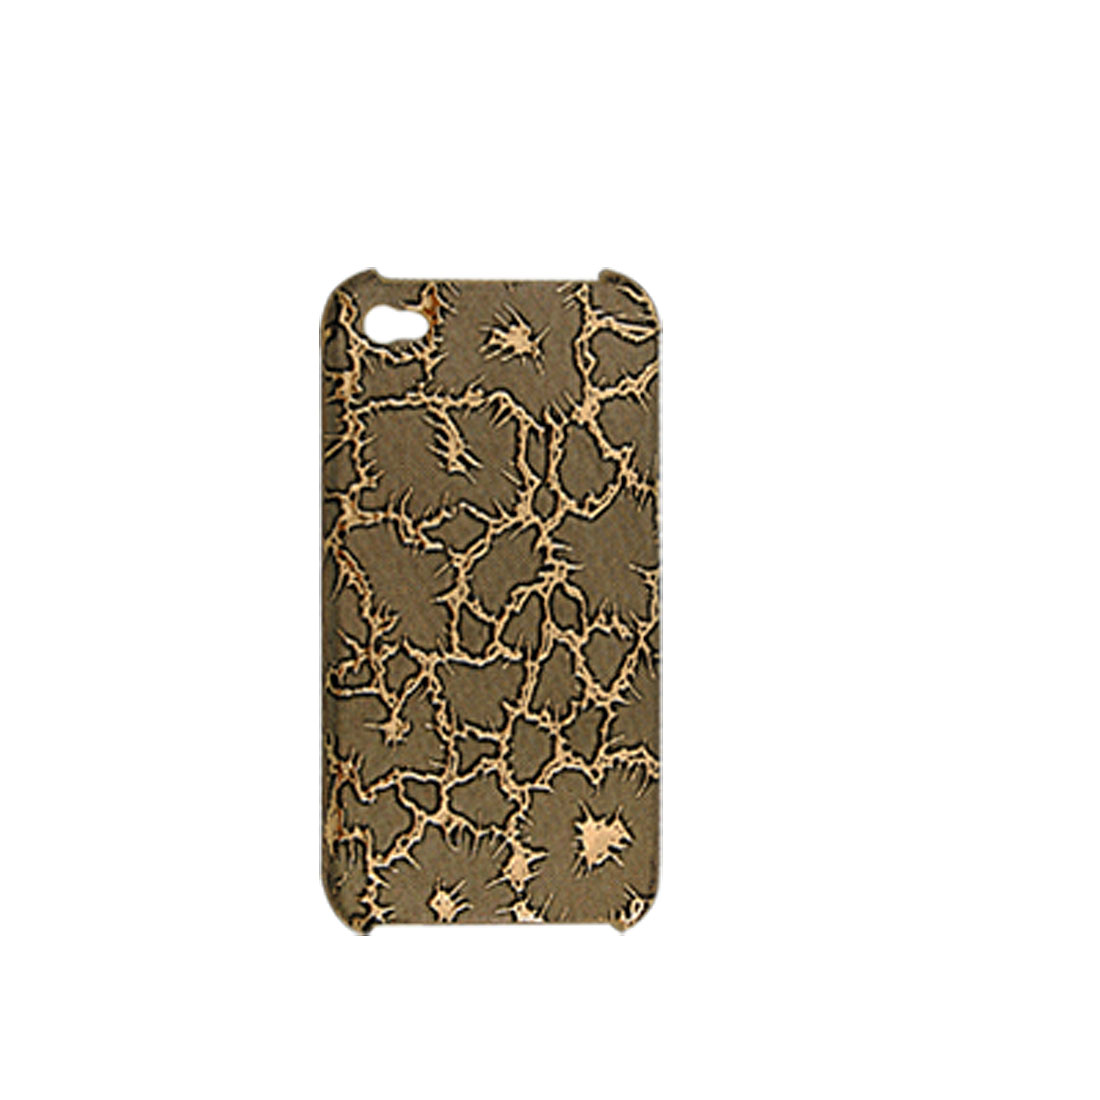 Gold Tone Crackle Hard Case + Anti-dust Cover + Screen Guard for iPhone 4 4G